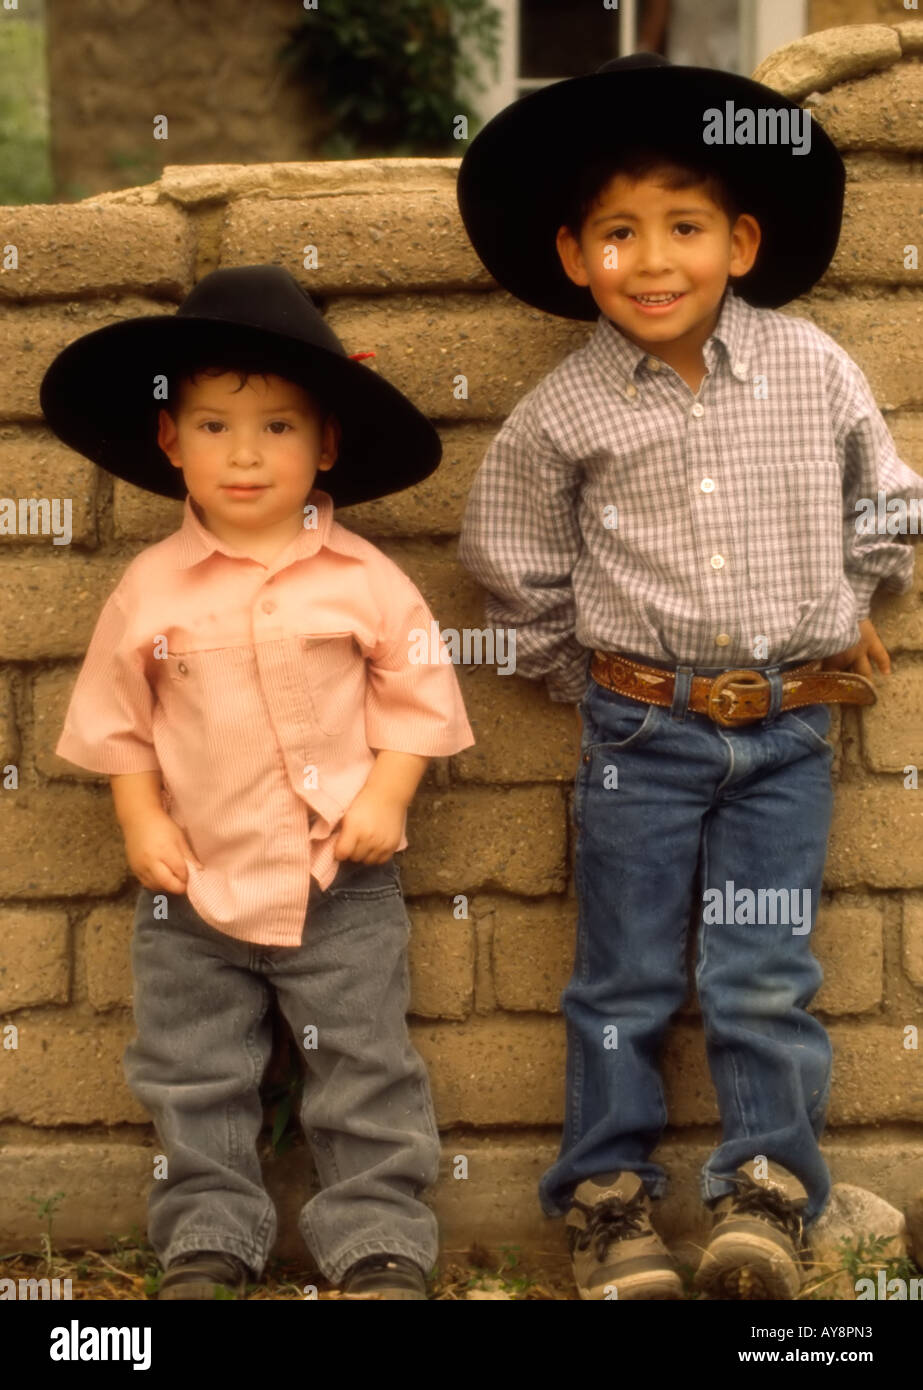 Two young hombres lean against an adobe wall, at 'Old Lincoln Days' in Lincoln, New  Mexico. - Stock Image